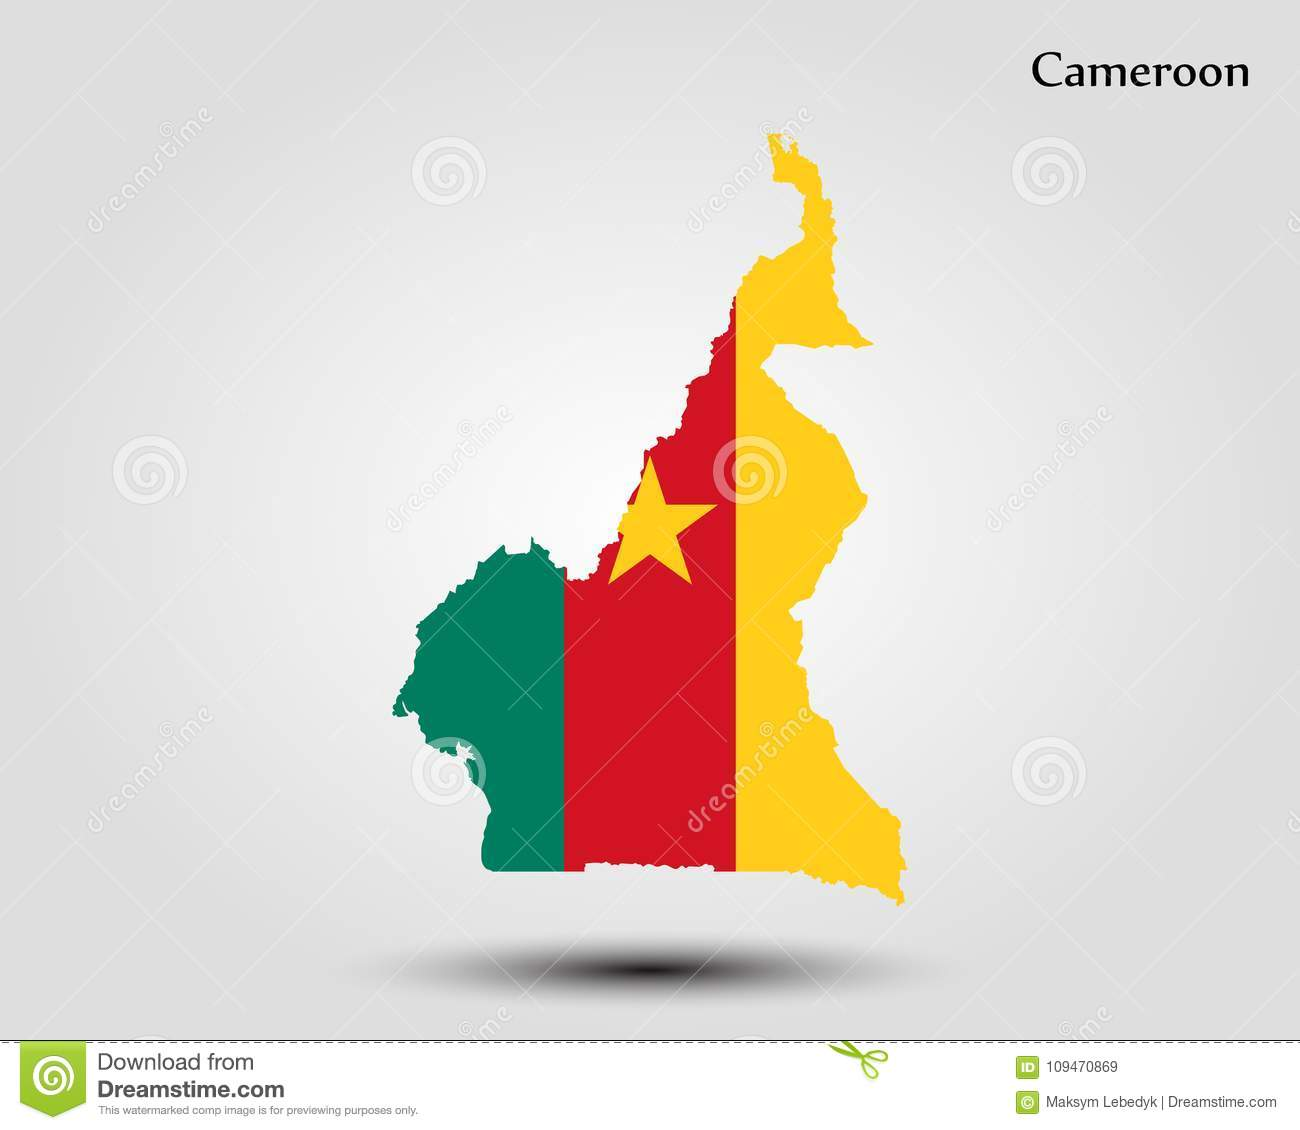 Map of Cameroon stock illustration. Illustration of national - 109470869